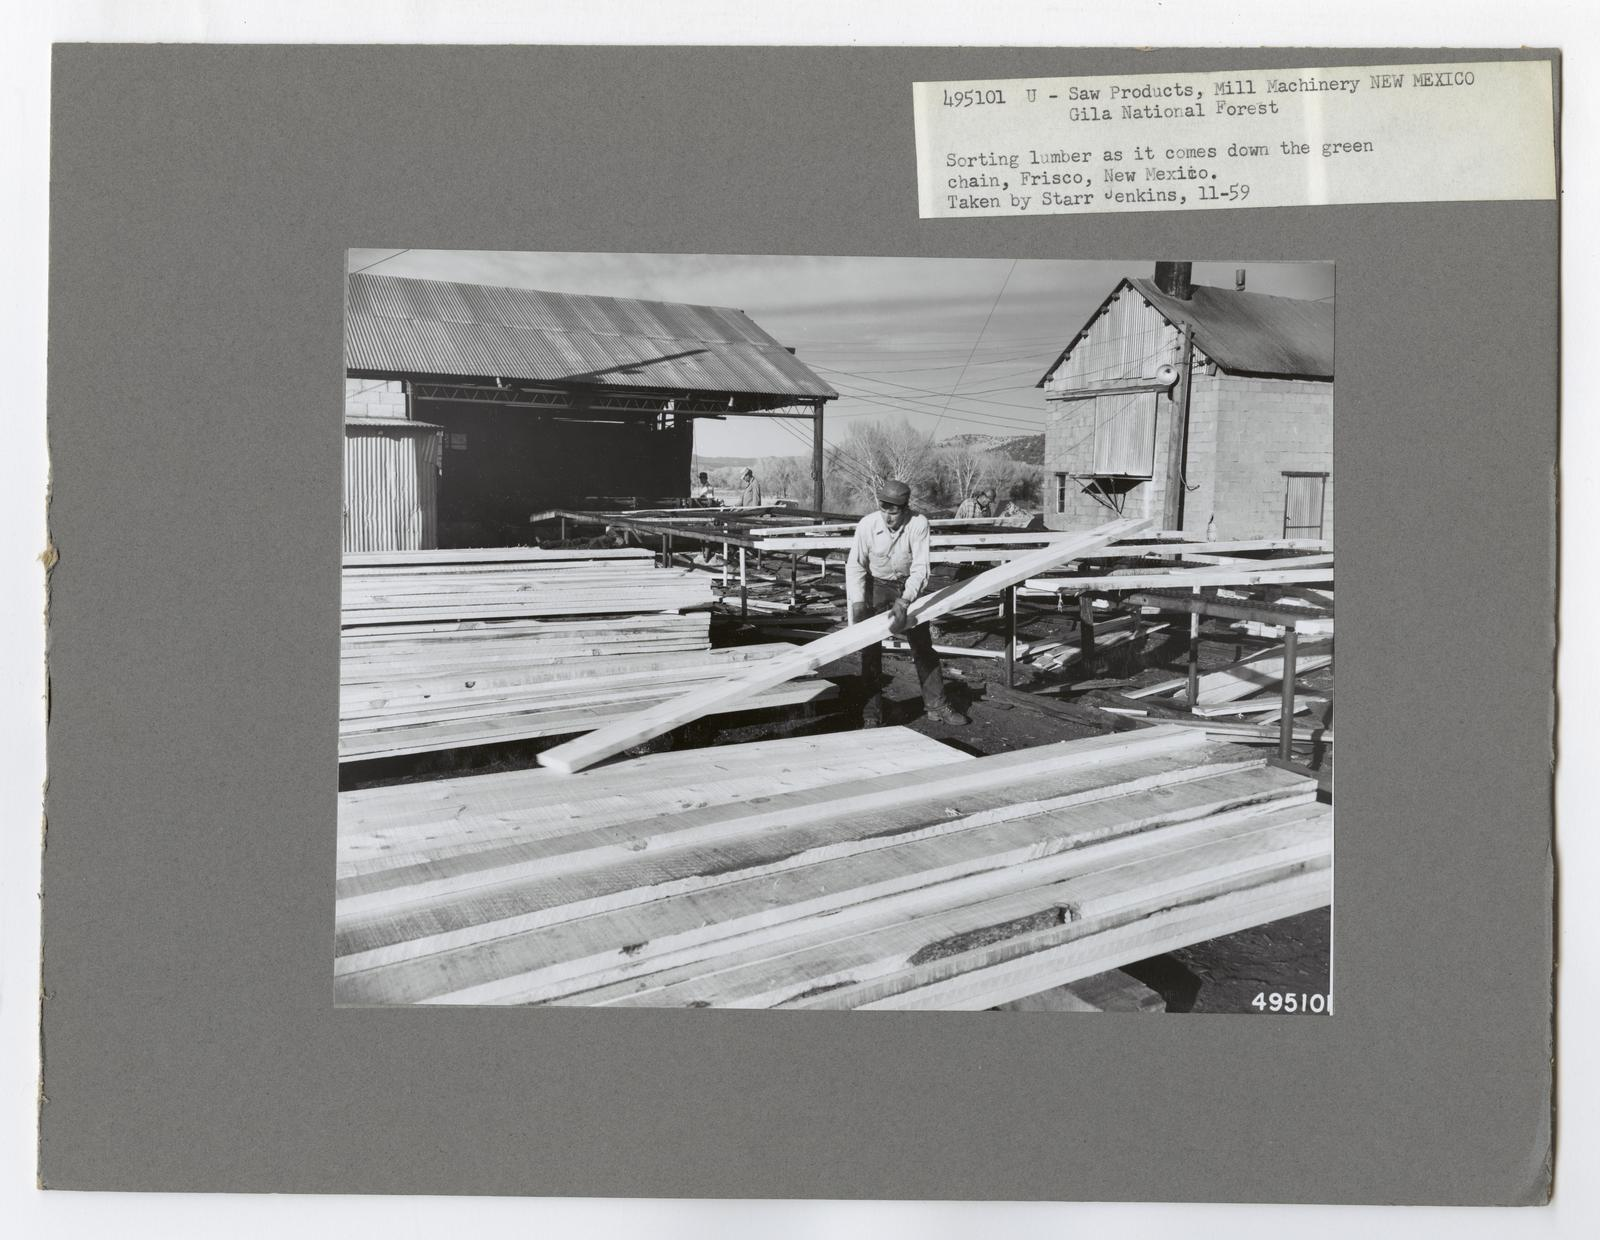 Mills, Milling and Log Storage - New Mexico